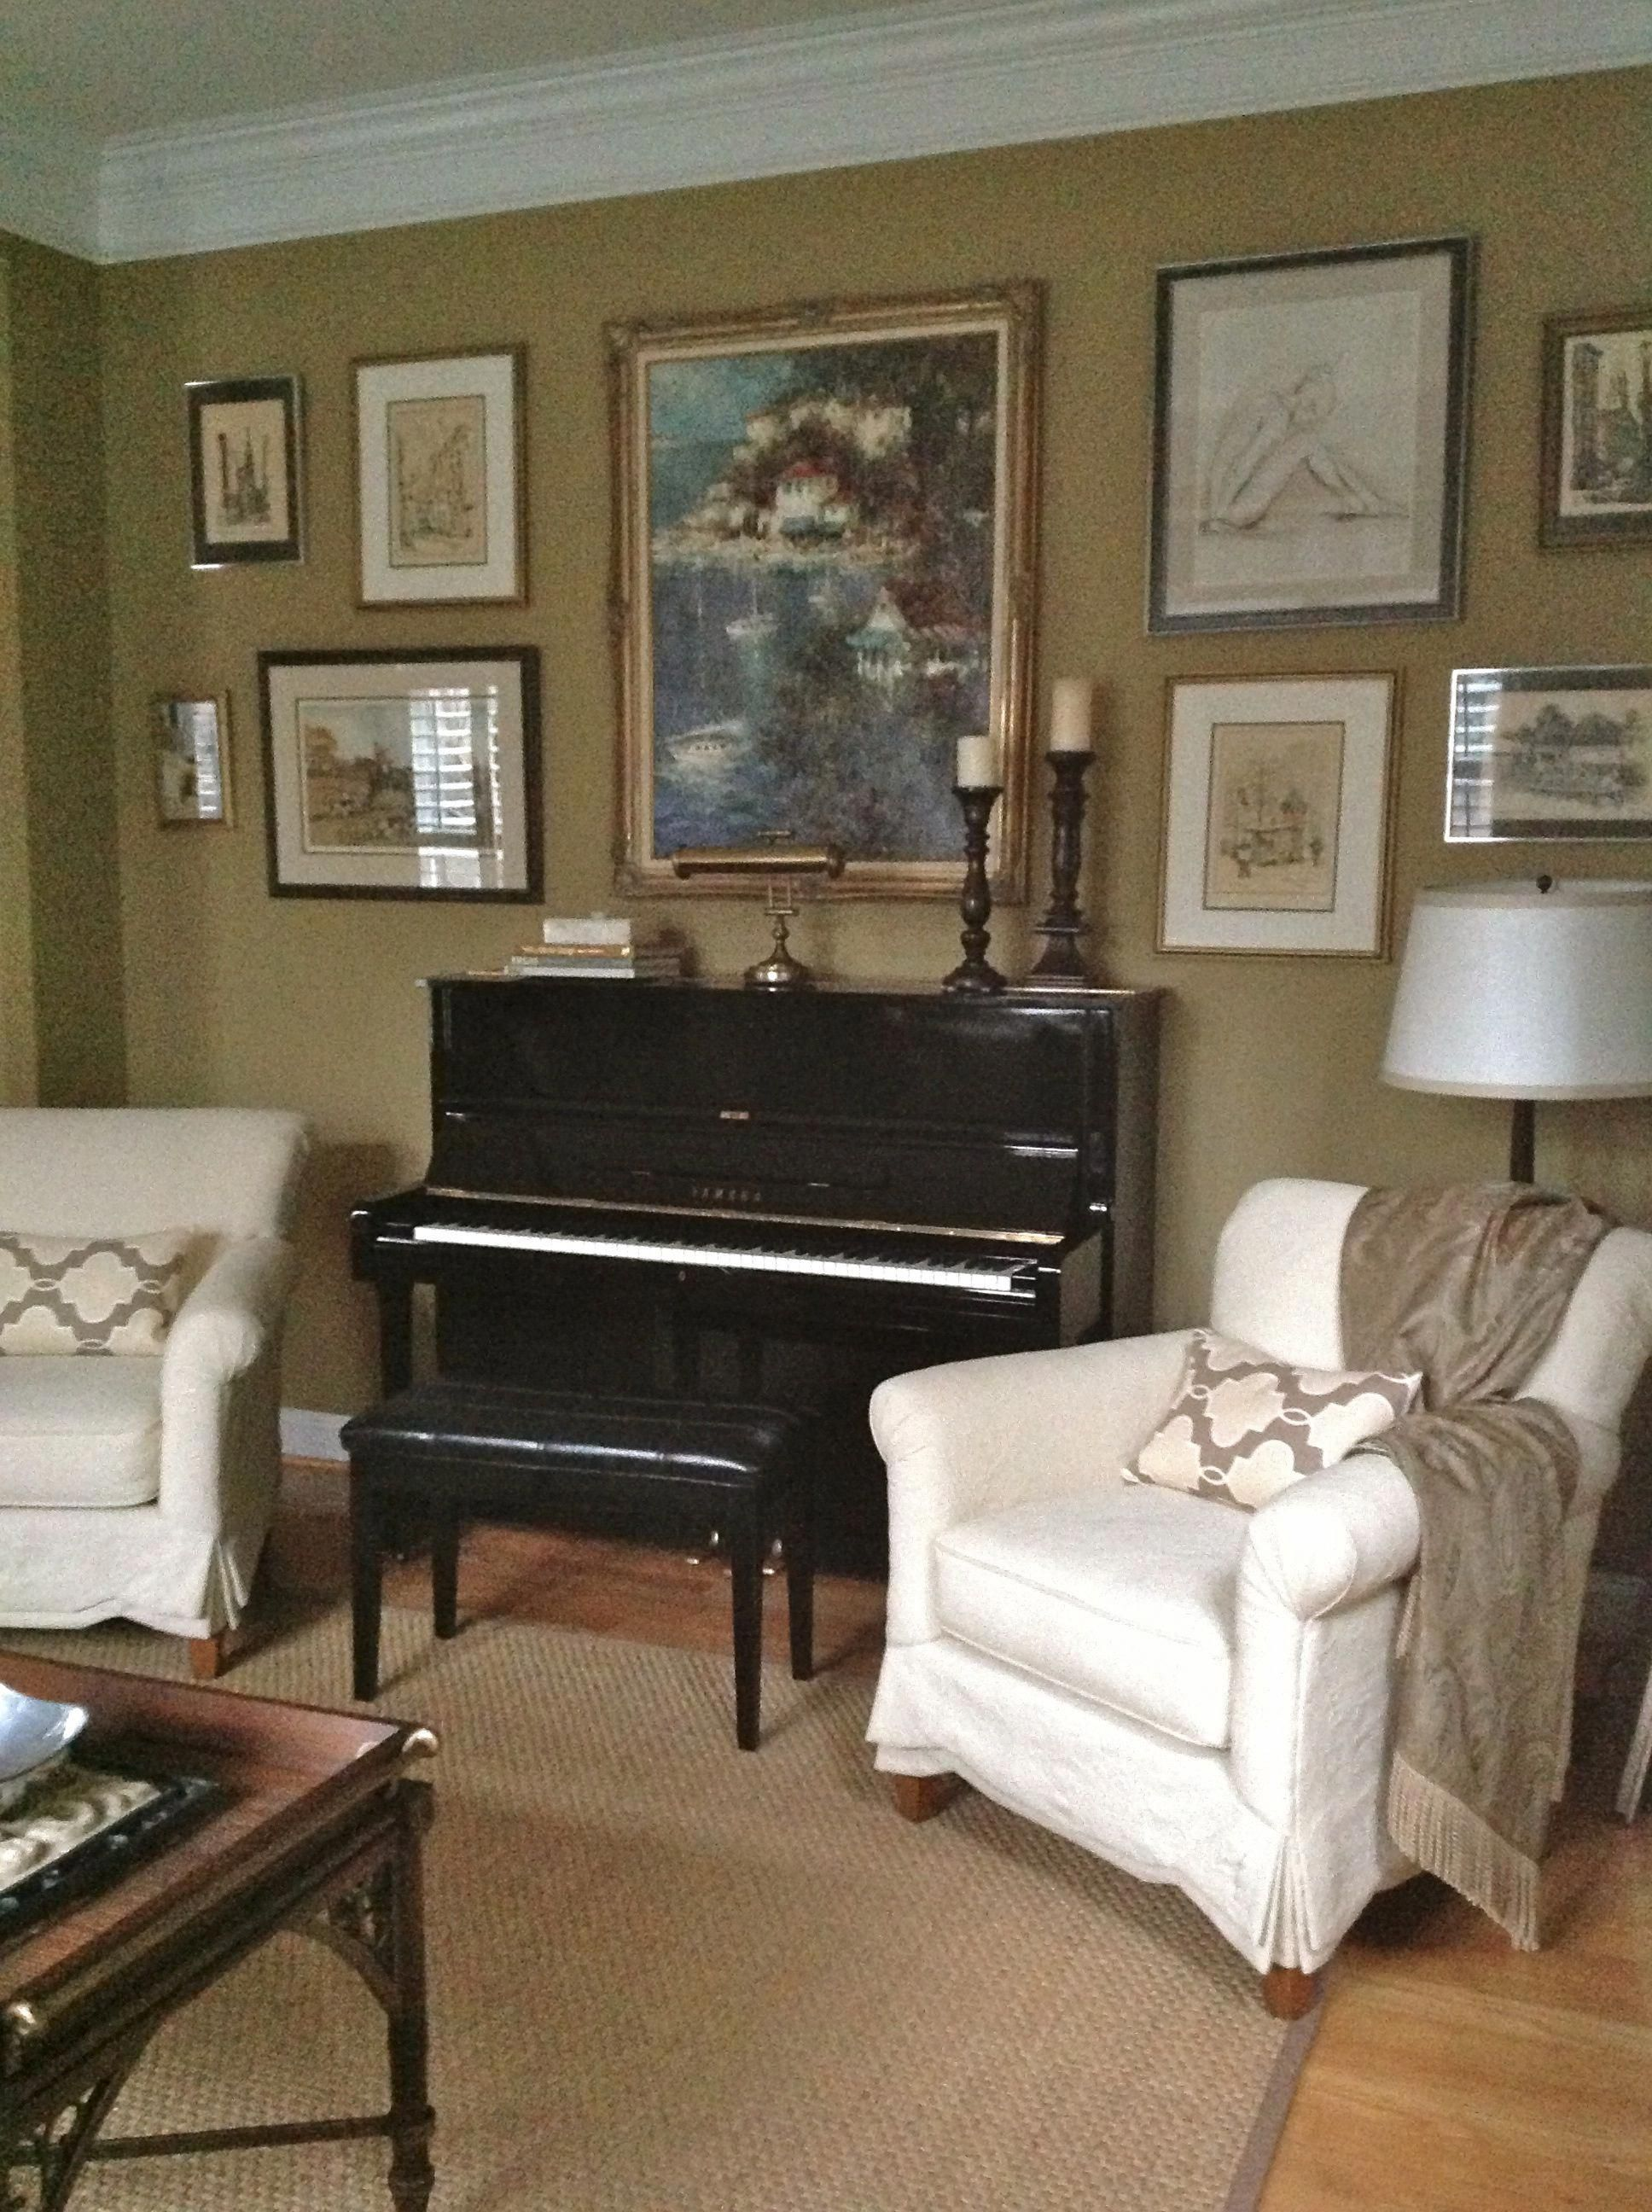 Small Living And Dining Room Design Ideas Smallroomdesign Piano Living Rooms Piano Room Decor Living Room Furniture Arrangement #small #living #room #with #piano